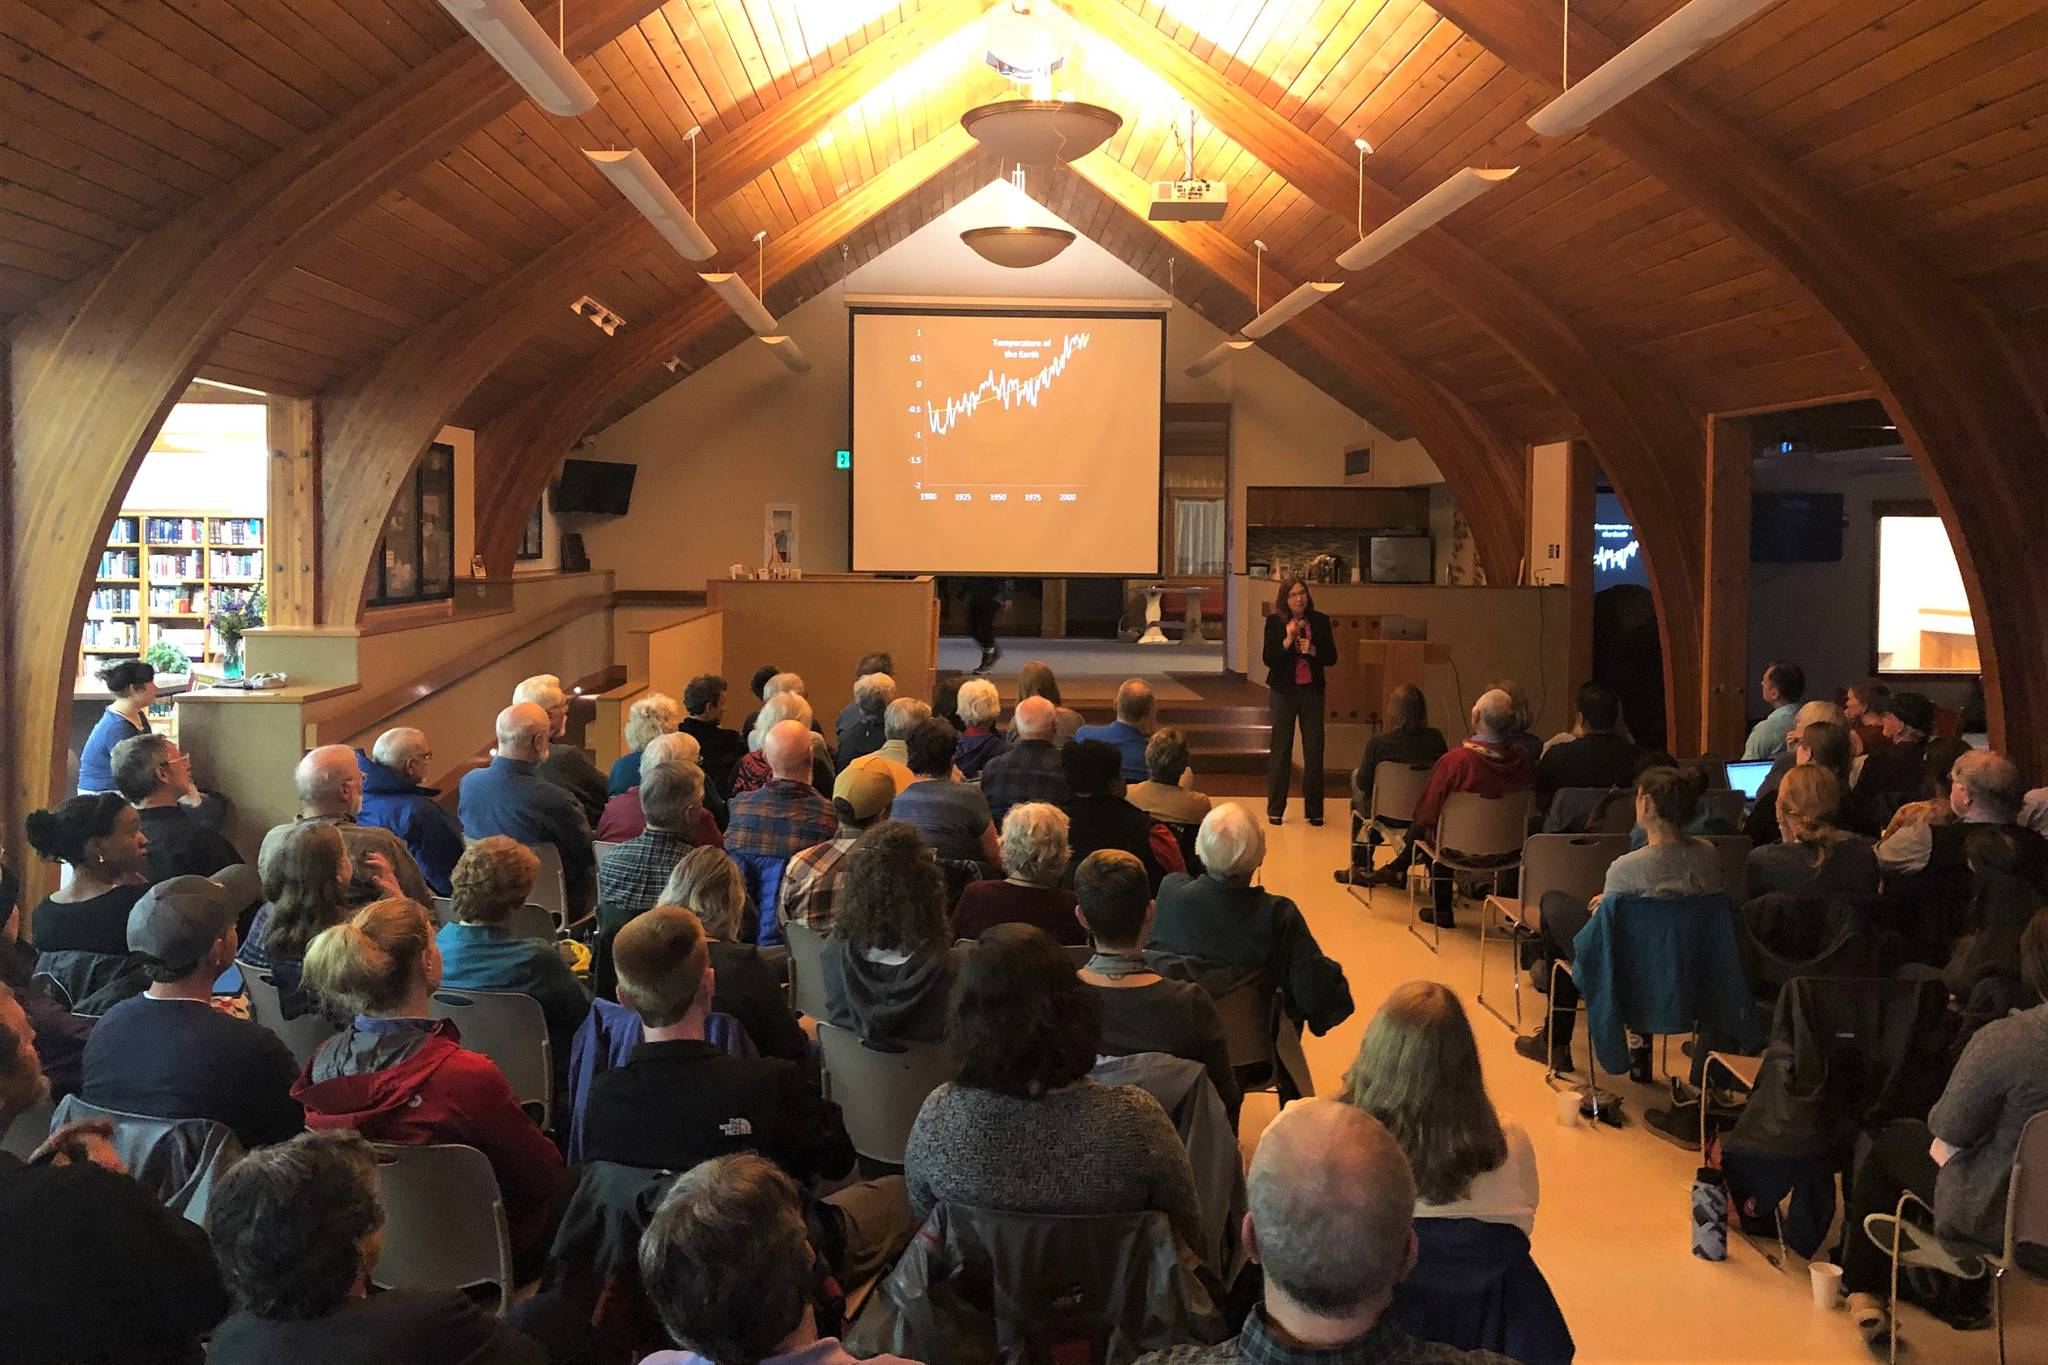 Katharine Hayhoe speaks to the audience at Chapel by the Lake on Sept. 13, 2019. (Peter Segall | Juneau Empire)